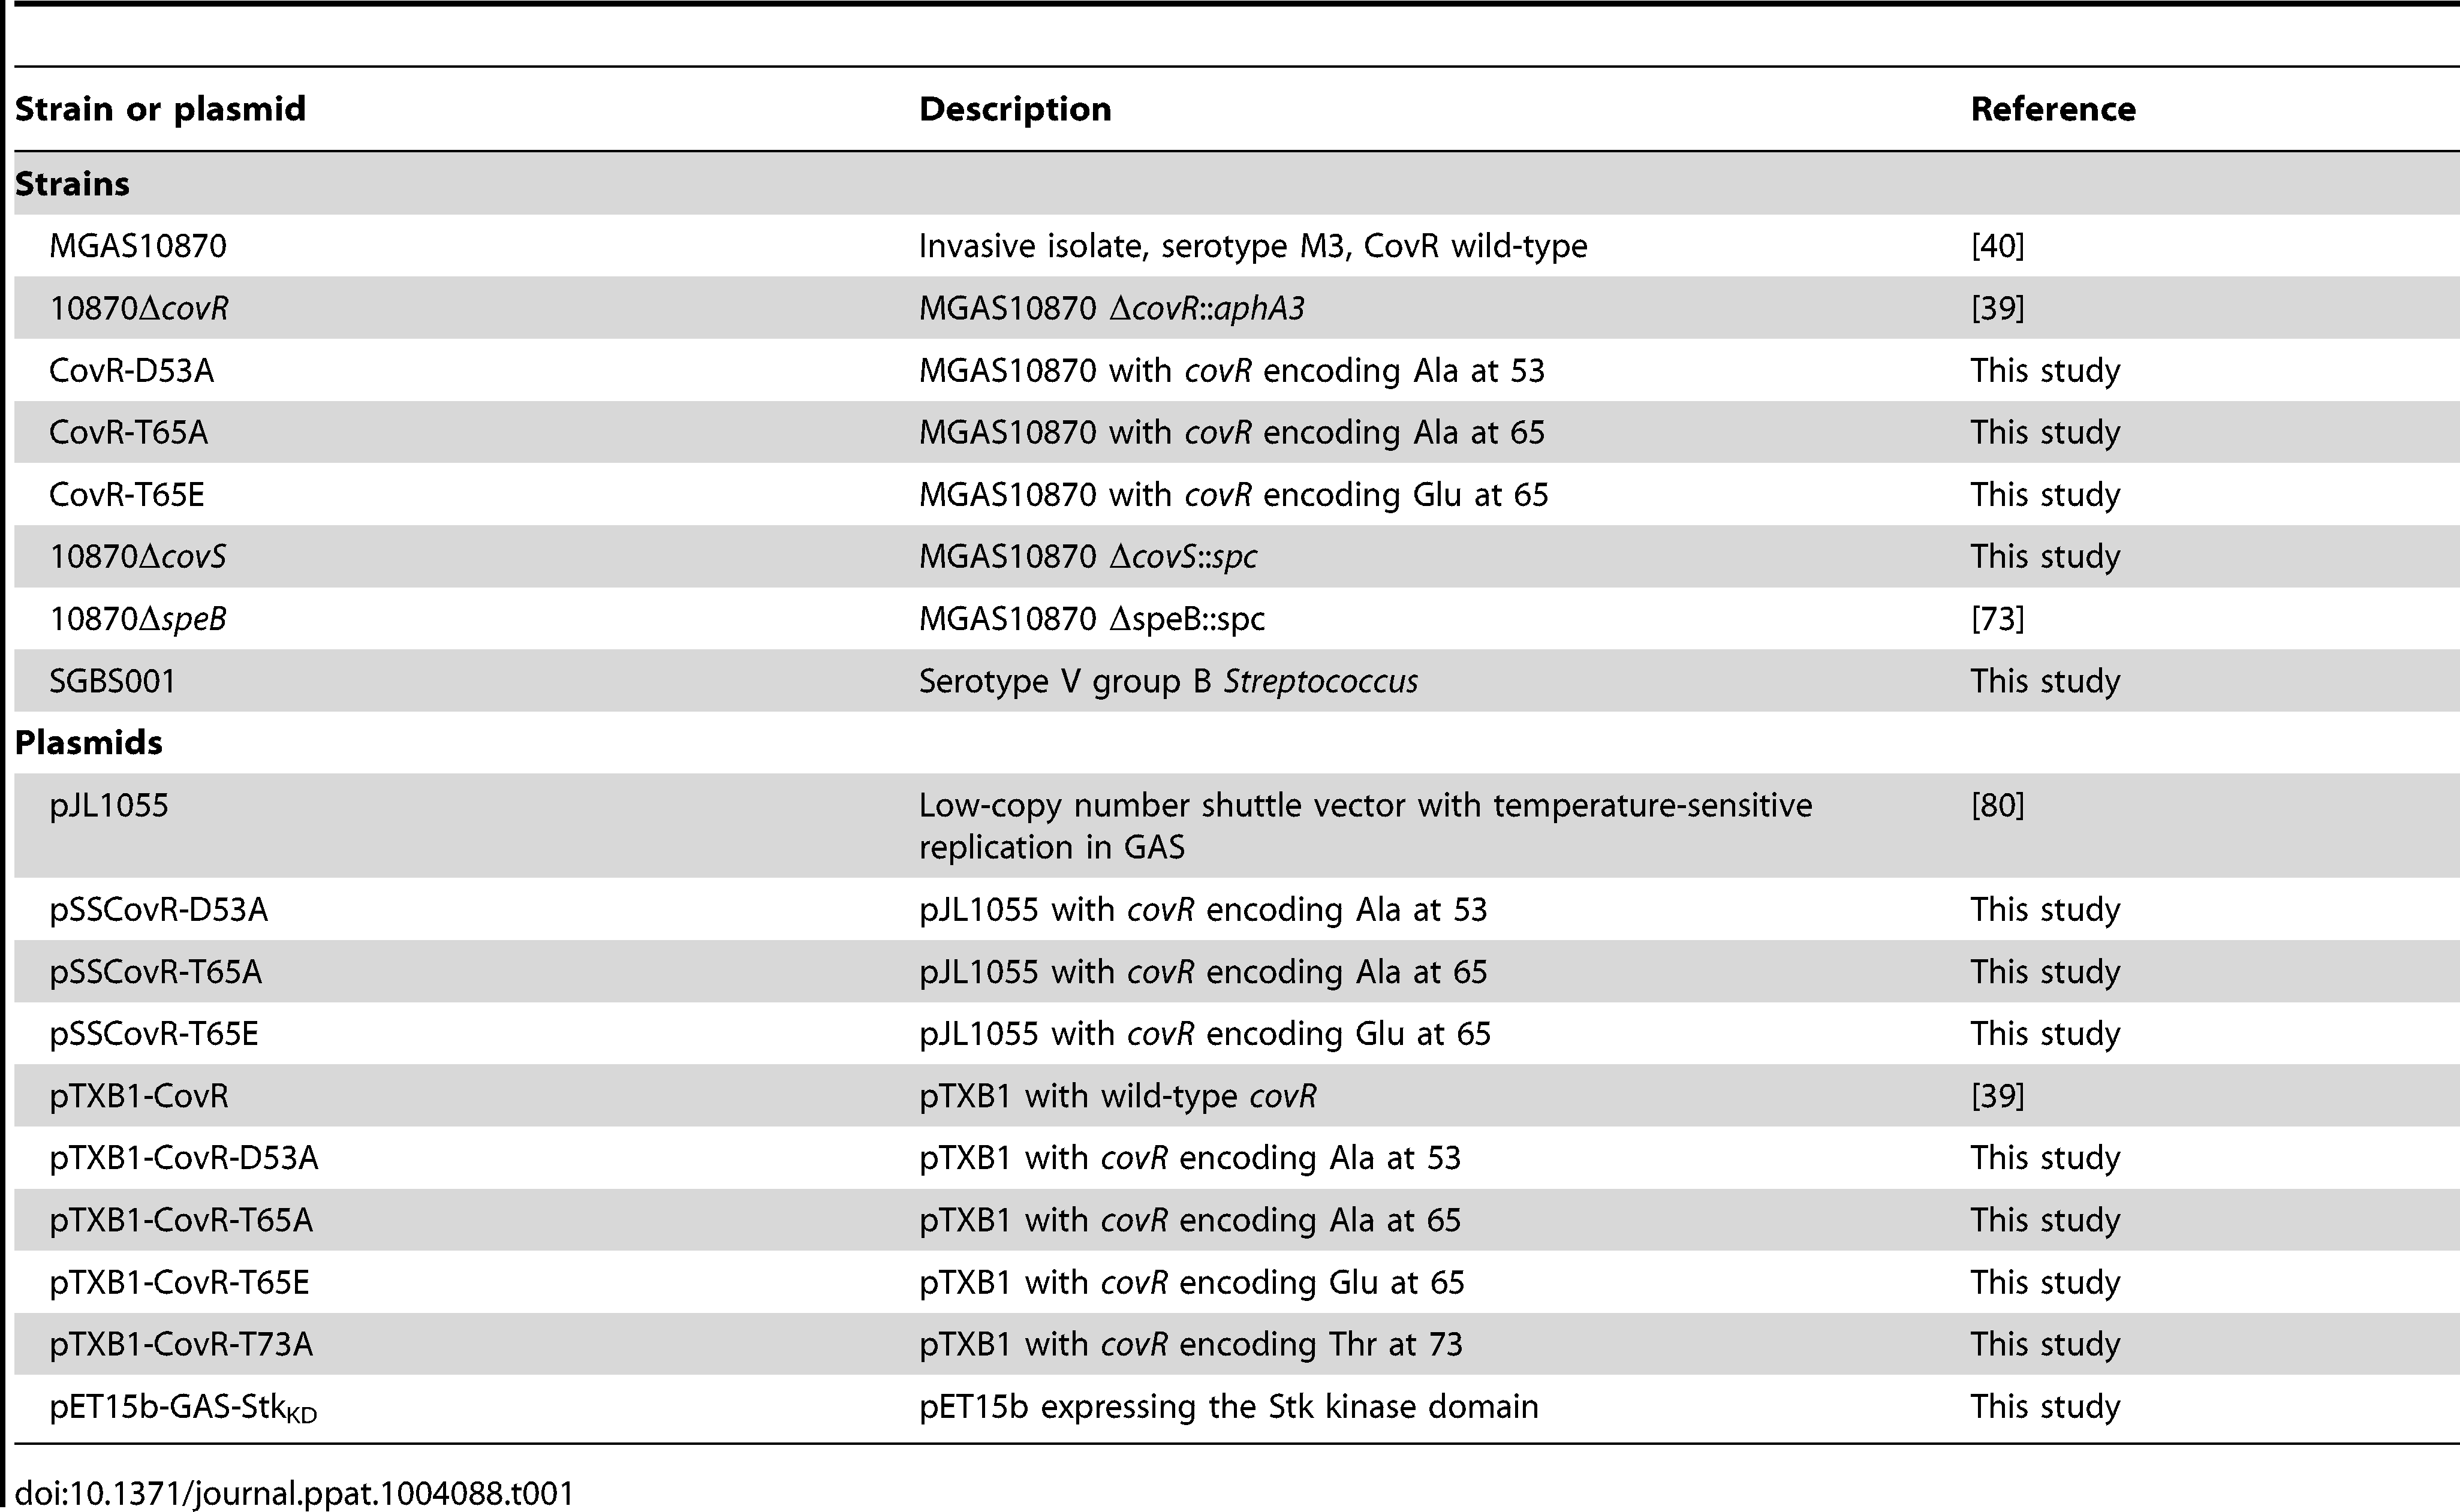 Strains and plasmids used in this work.